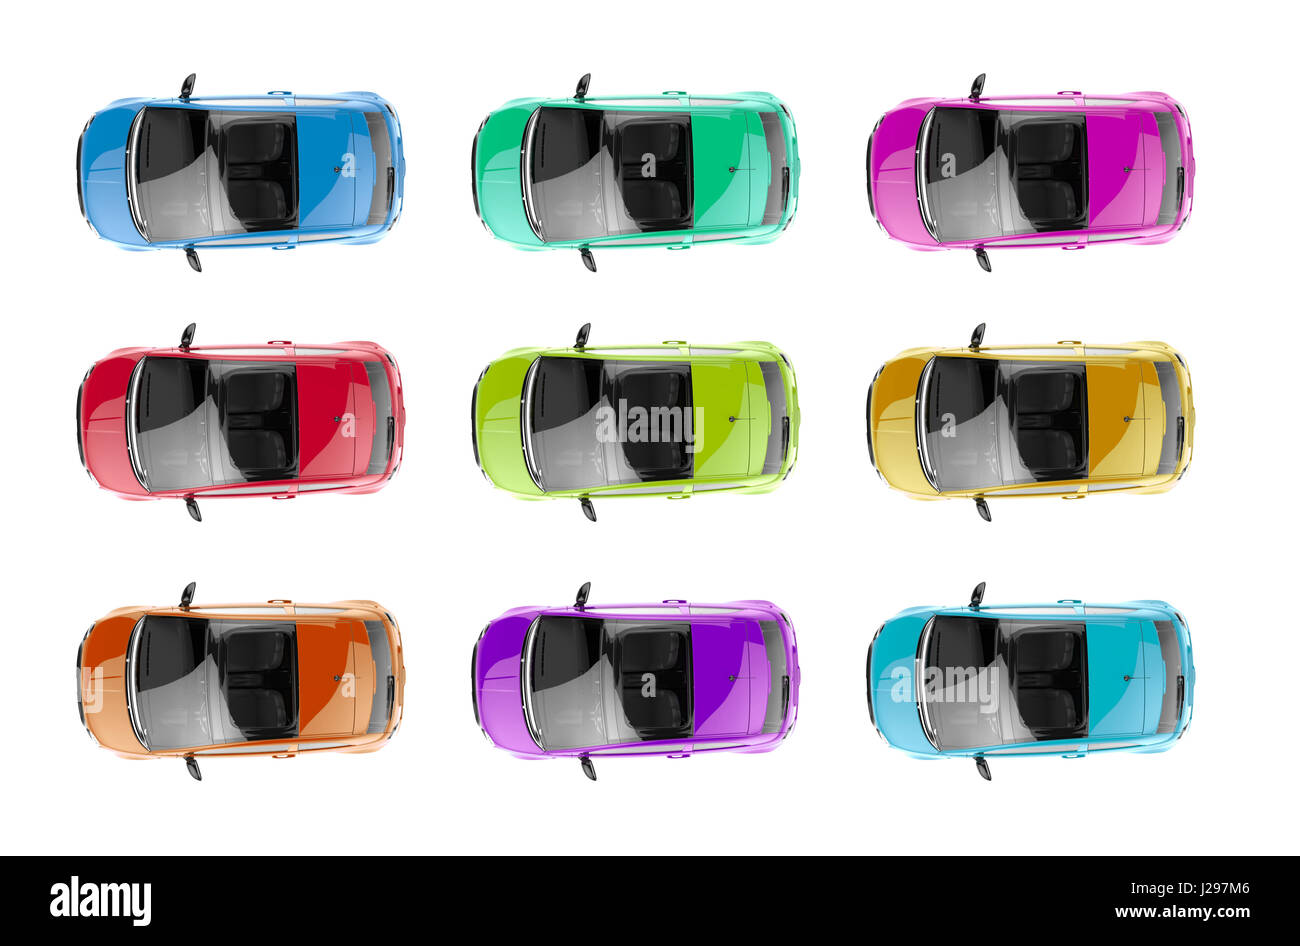 Collection of generic colorful city cars isolated on a white background - Stock Image